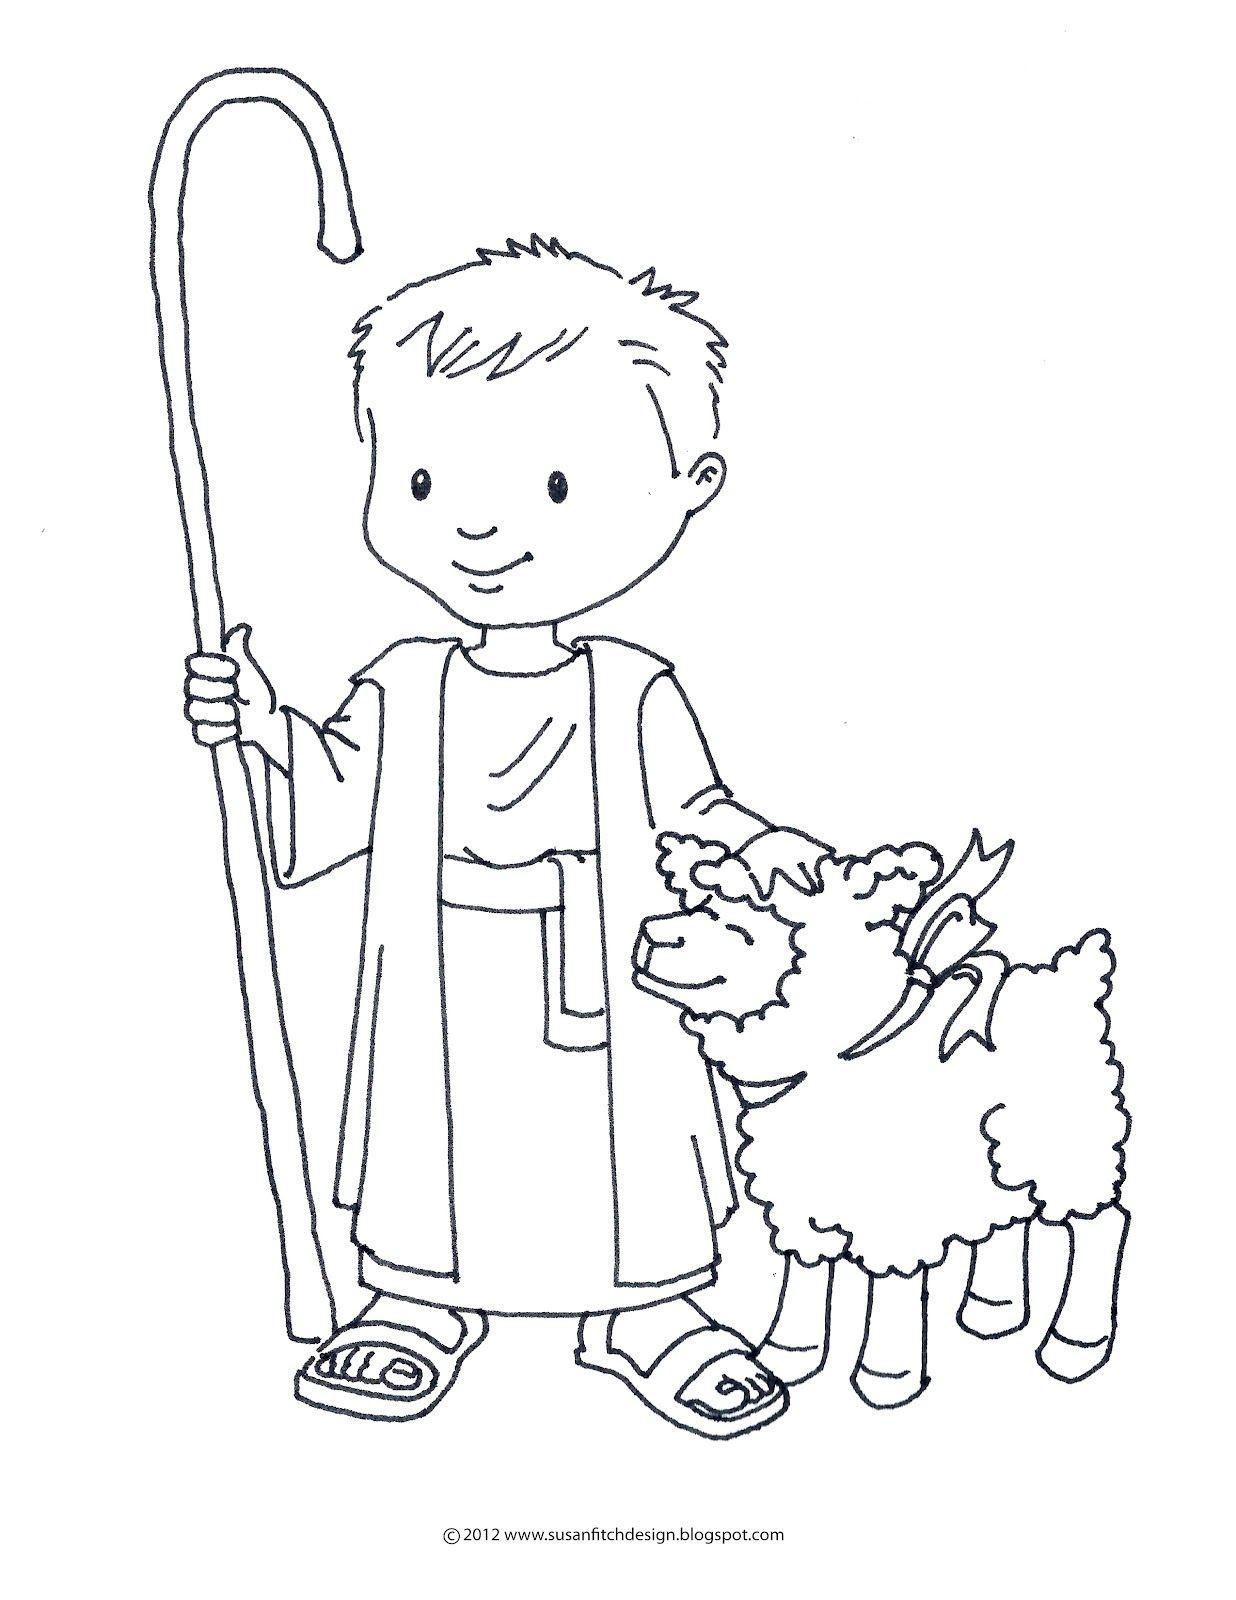 Awesome Coloring Page David The Shepherd Boy That You Must Know